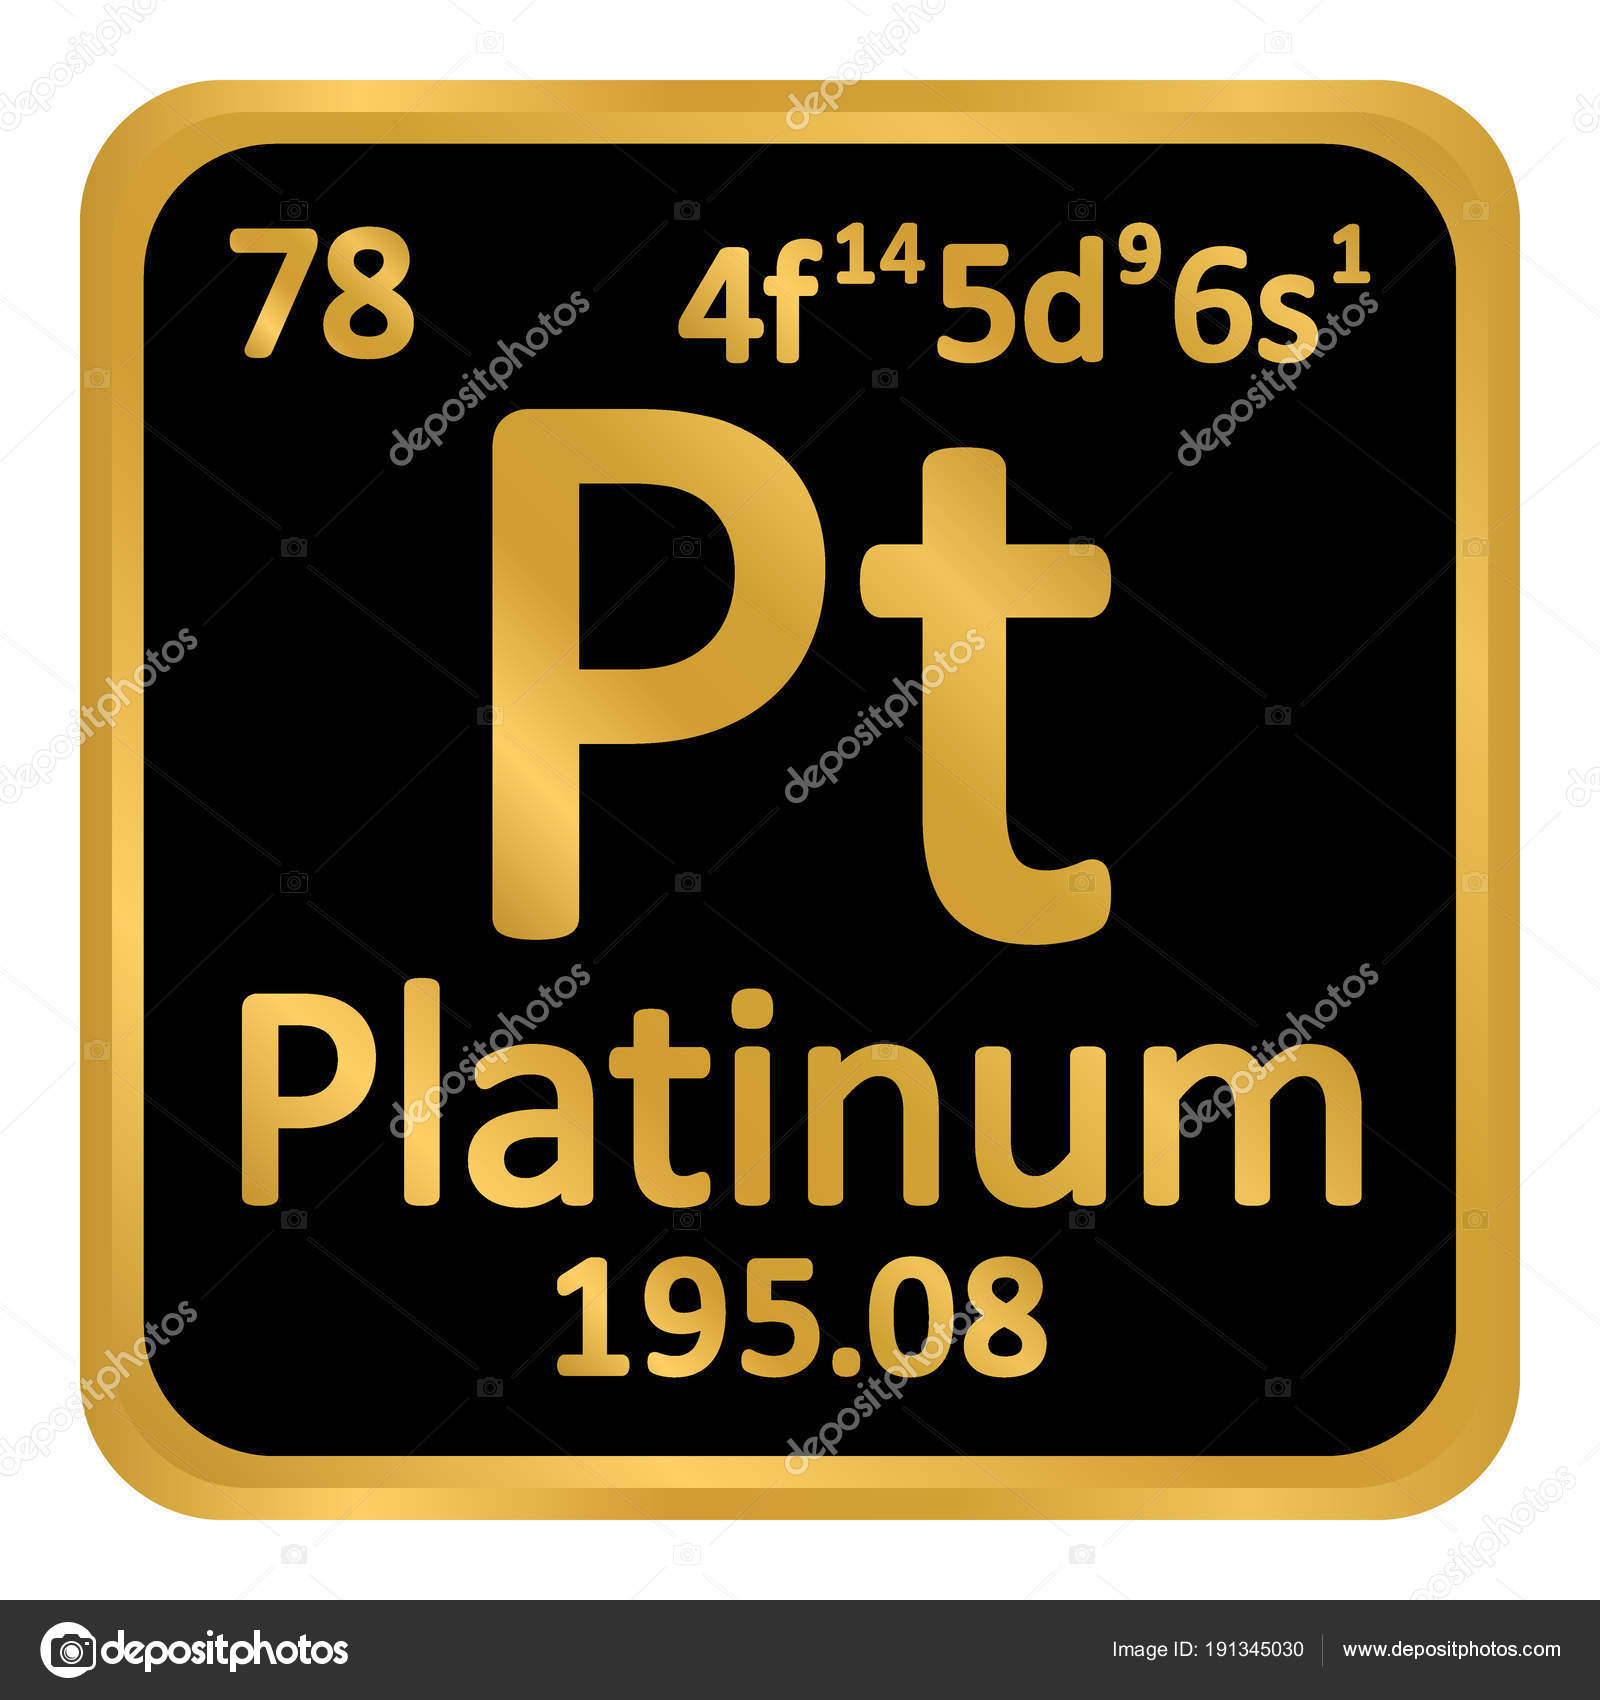 platinum learner facts element metal it symbol chemistry ruthenium is discovery properties radioactive a uses